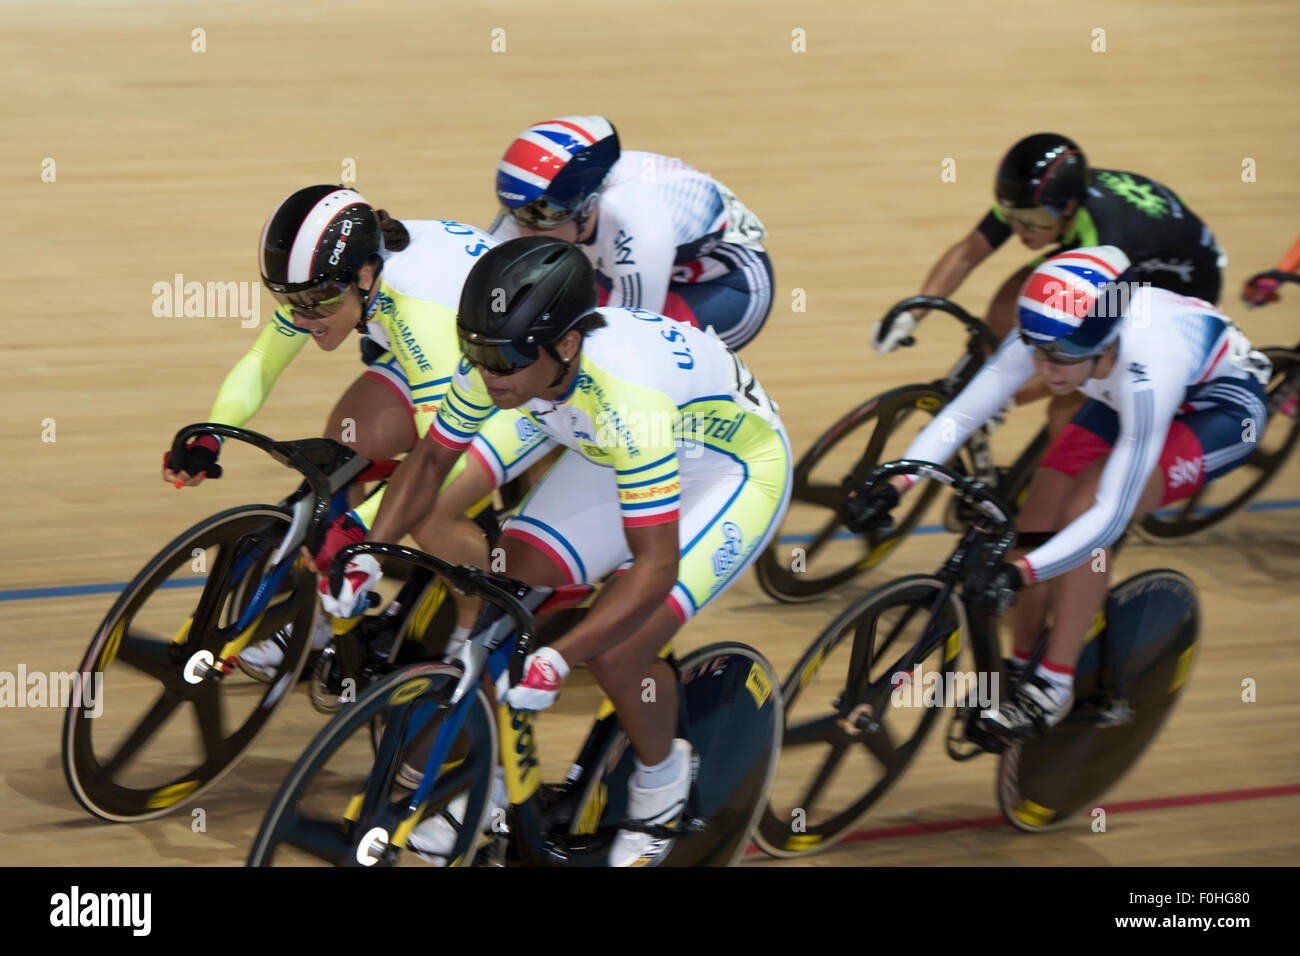 Derby, UK. 16th Aug, 2015. French cyclists Sandie Clair and Olivia Montauban lead British riders Katy Marchant and - Stock Image